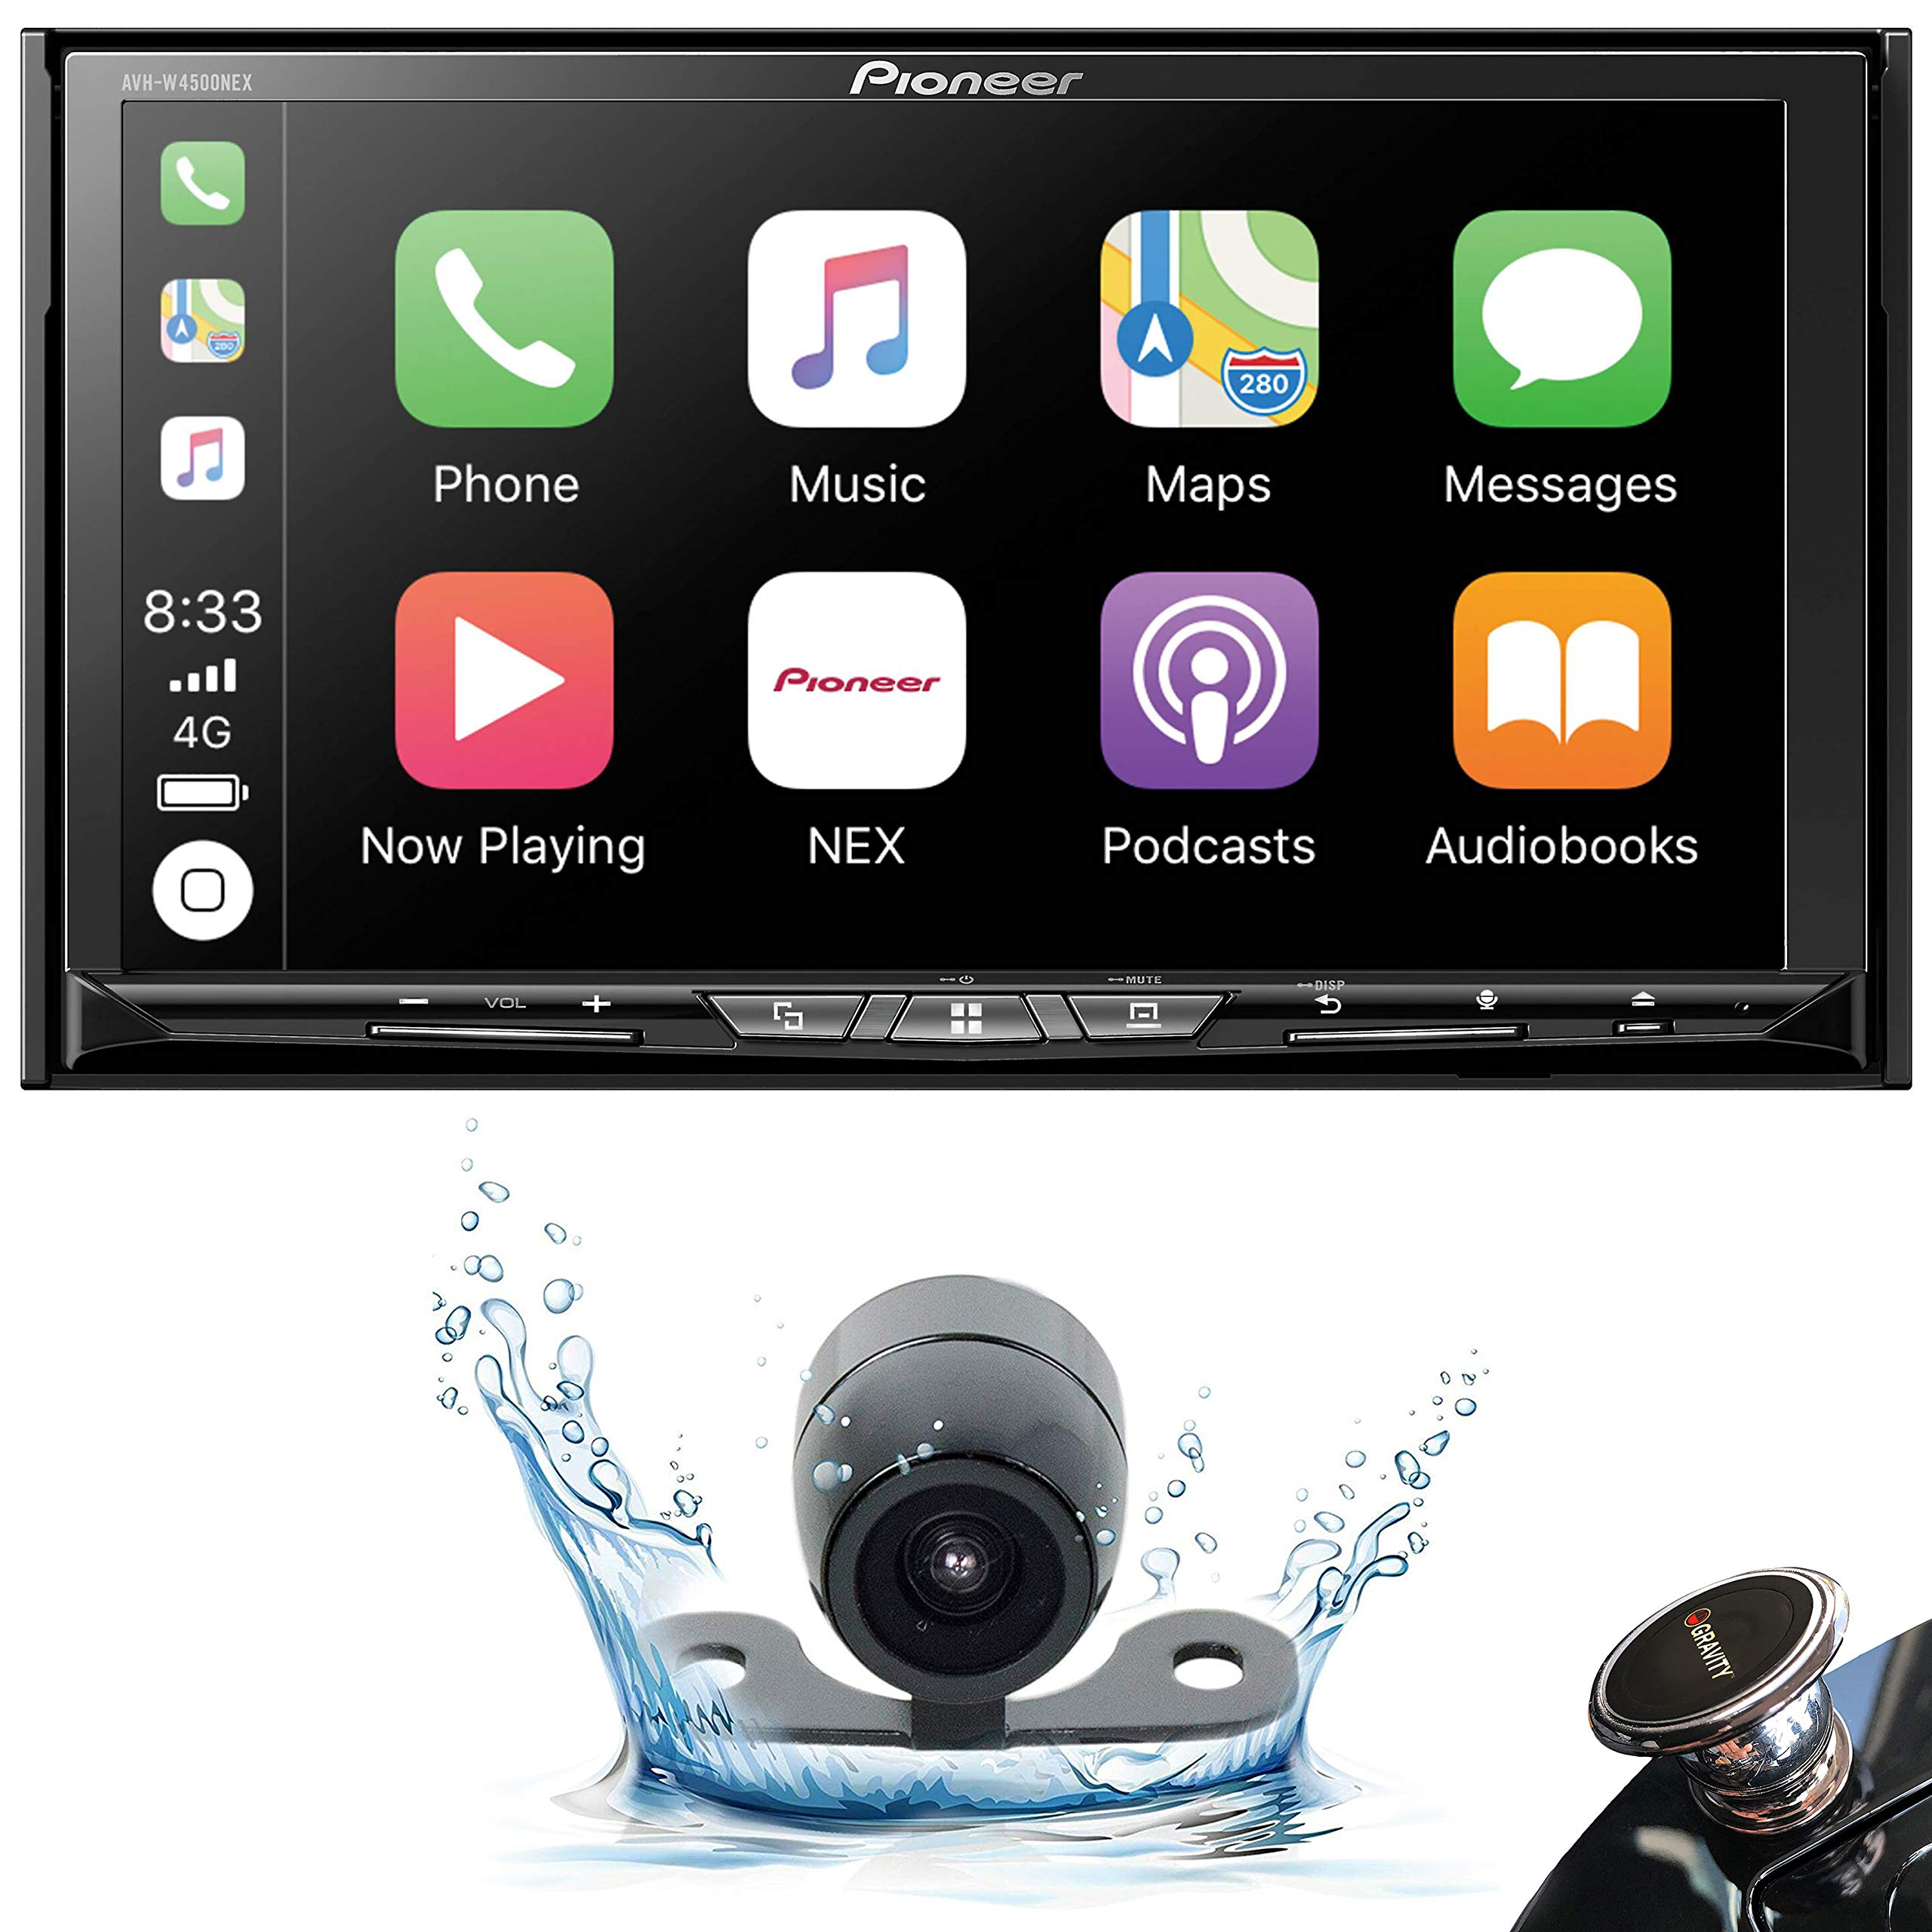 Pioneer AVH-W4500NEX Double DIN Wireless Mirroring Android Auto, Carplay in-Dash DVD/CD Car Stereo Receiver, 7'' Touchscreen + Backup Camera + Mobile Phone Holder by PIONEER